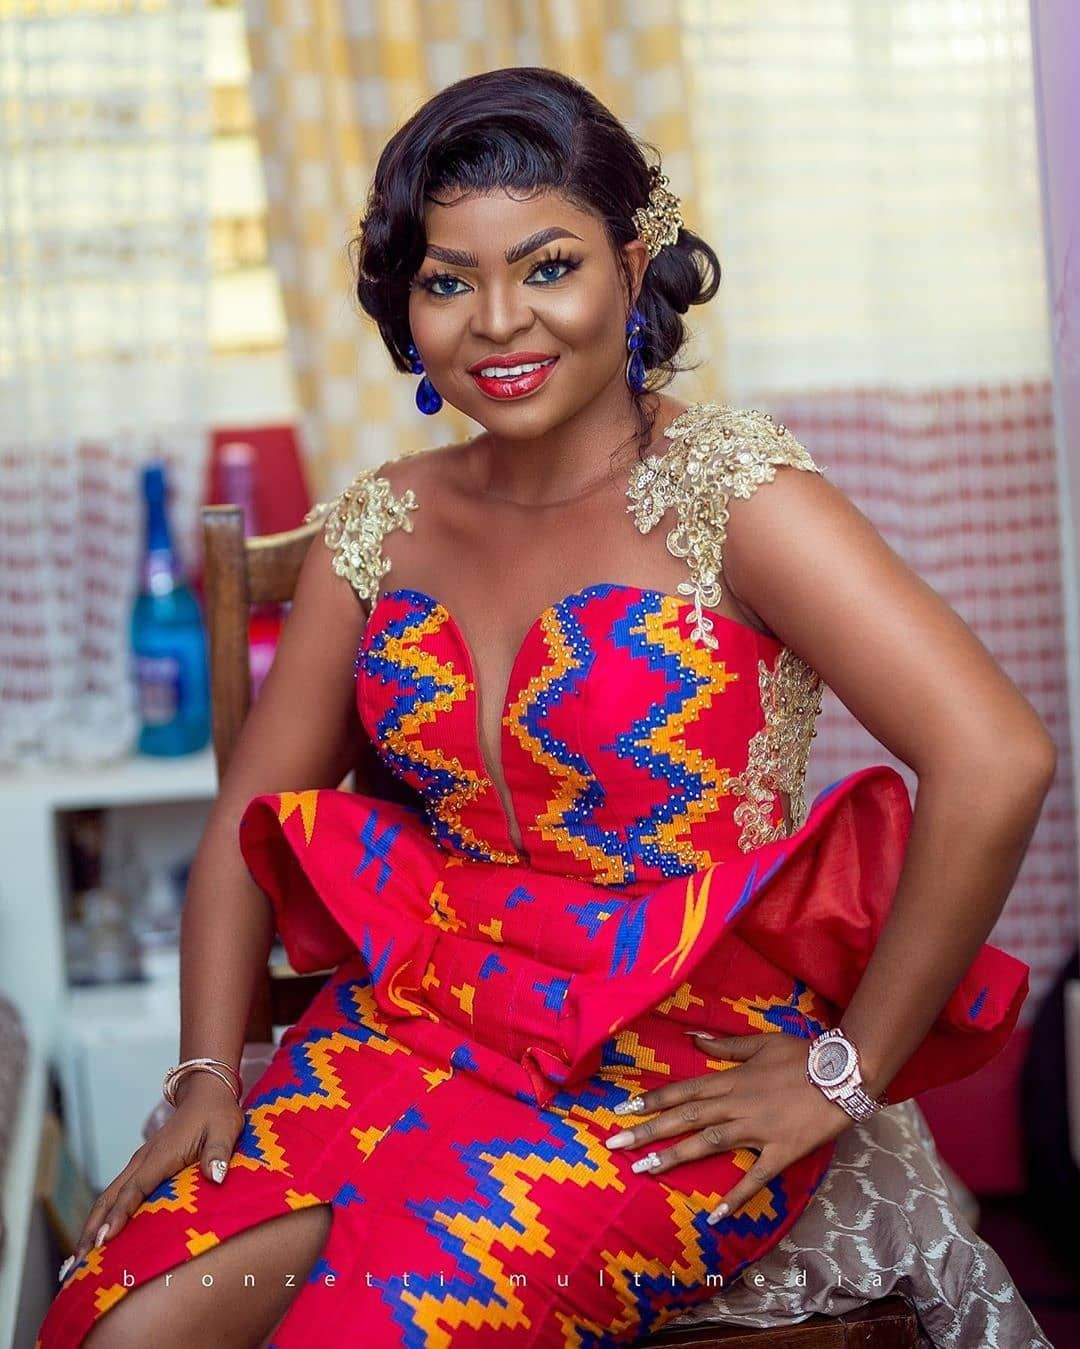 Affordable And Quality Kente On Instagram Ghanameetsnaija Our Beautiful Bride Kente Dress African Fashion Traditional African Clothing Styles [ 1349 x 1080 Pixel ]